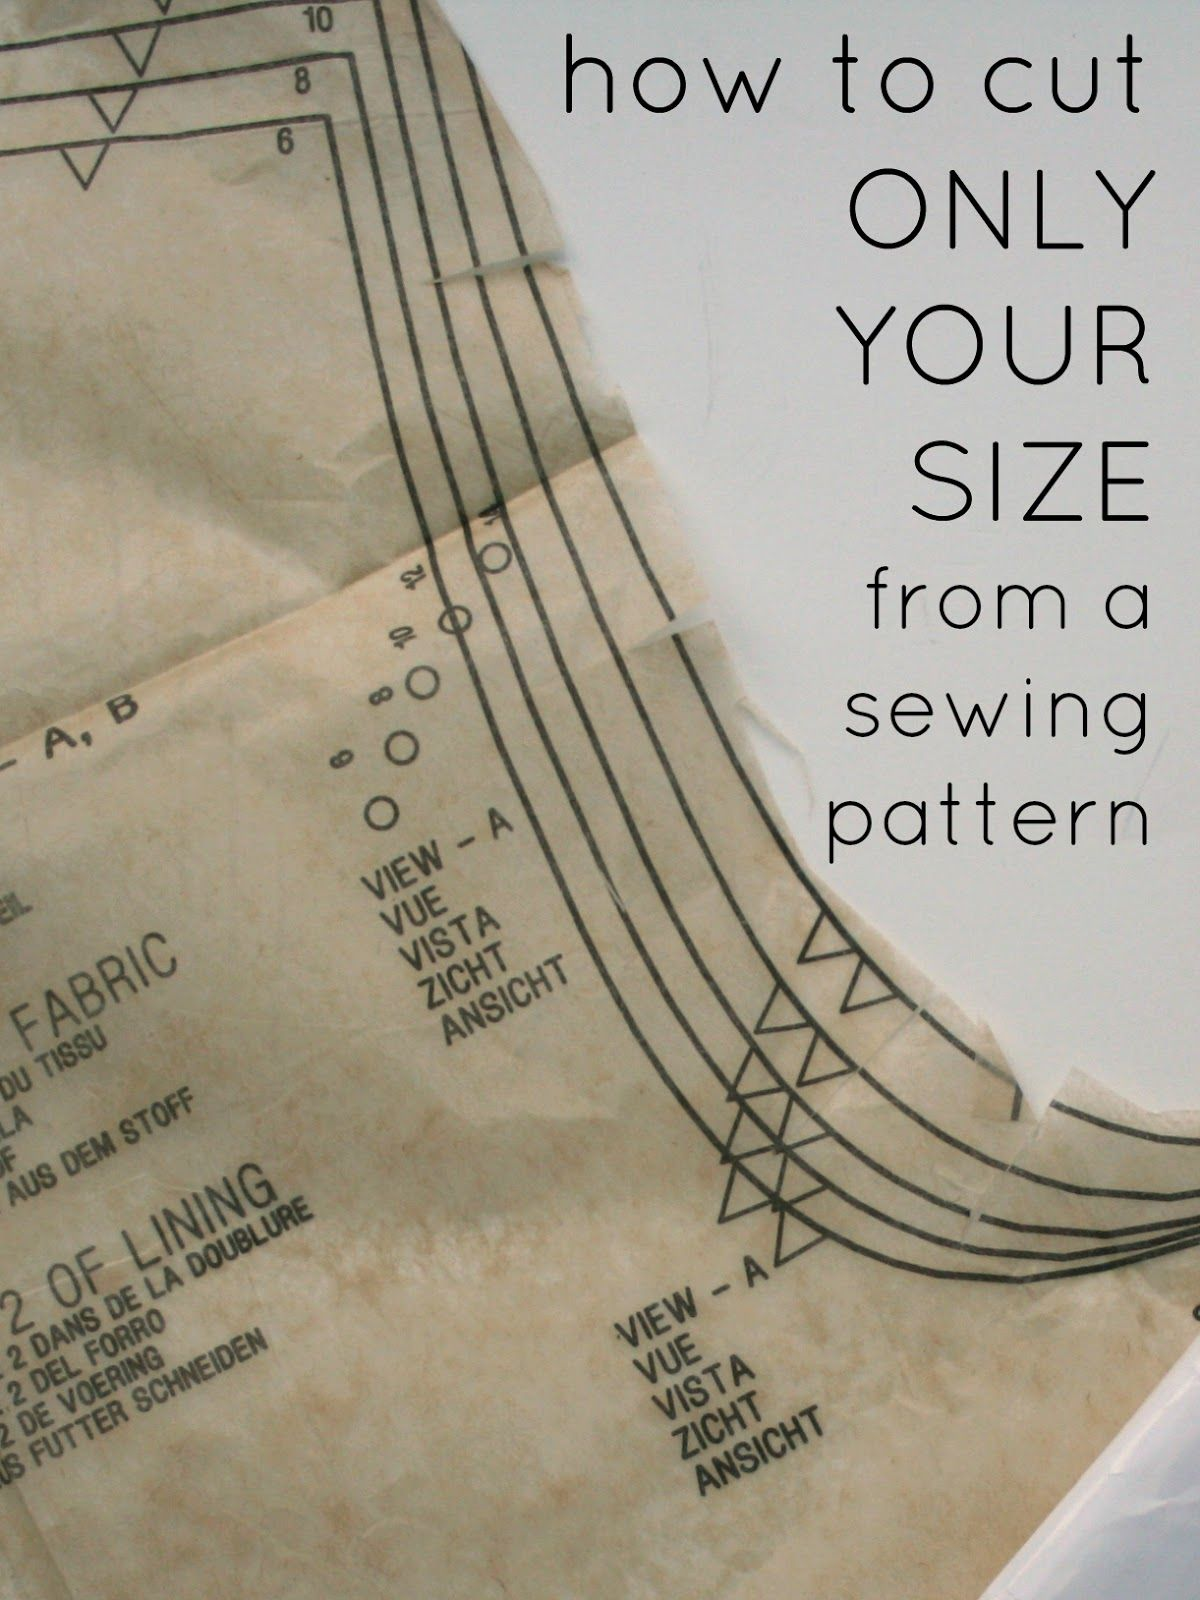 Adventures in dressmaking sewing circle how to cut out your size adventures in dressmaking sewing circle how to cut out your size from a pattern jeuxipadfo Image collections